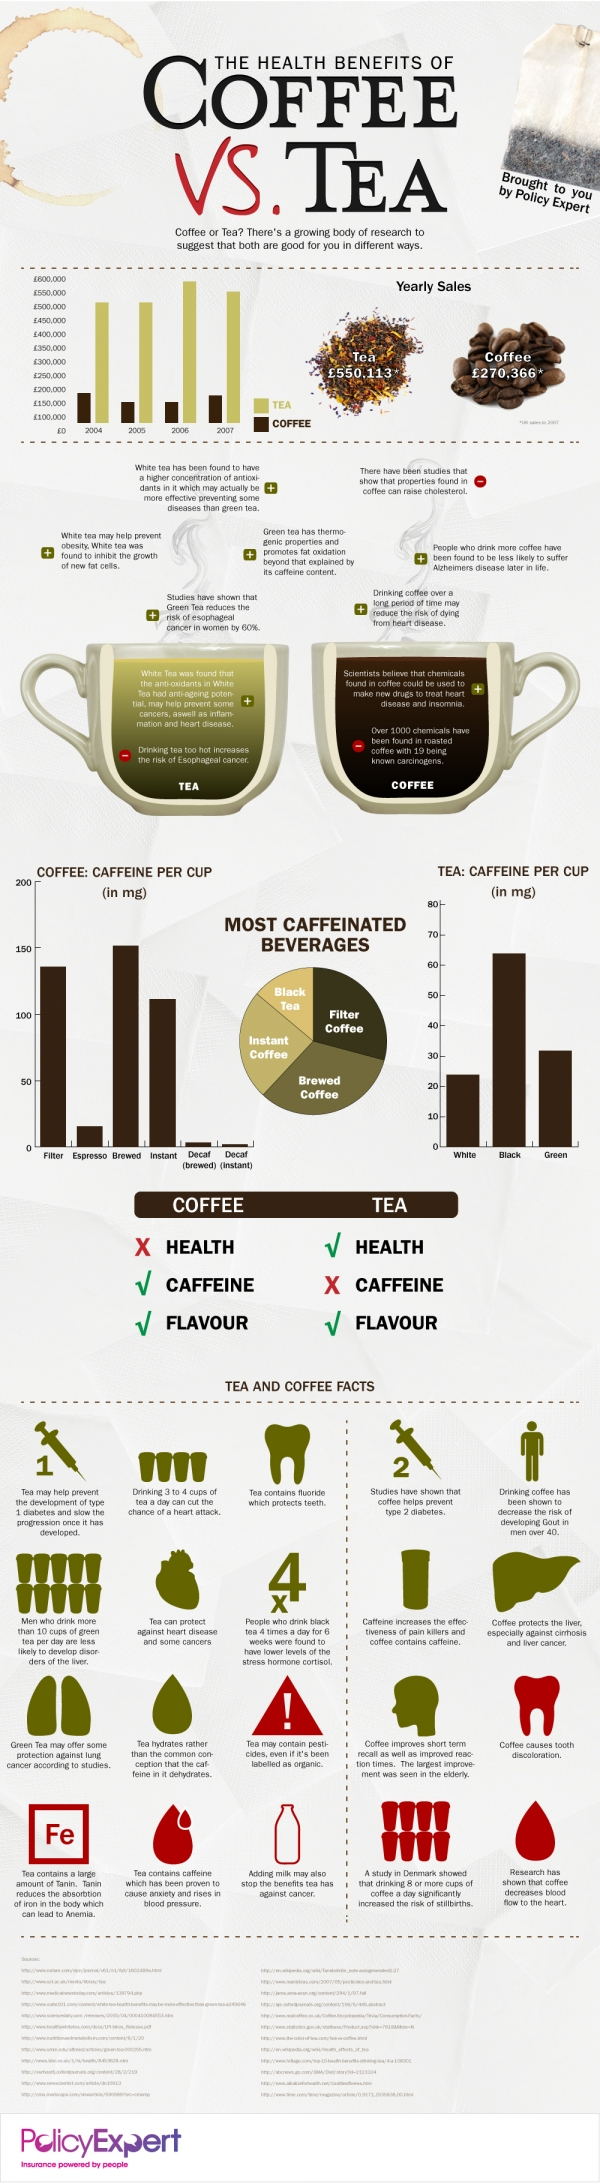 Interesting facts about tea and coffee